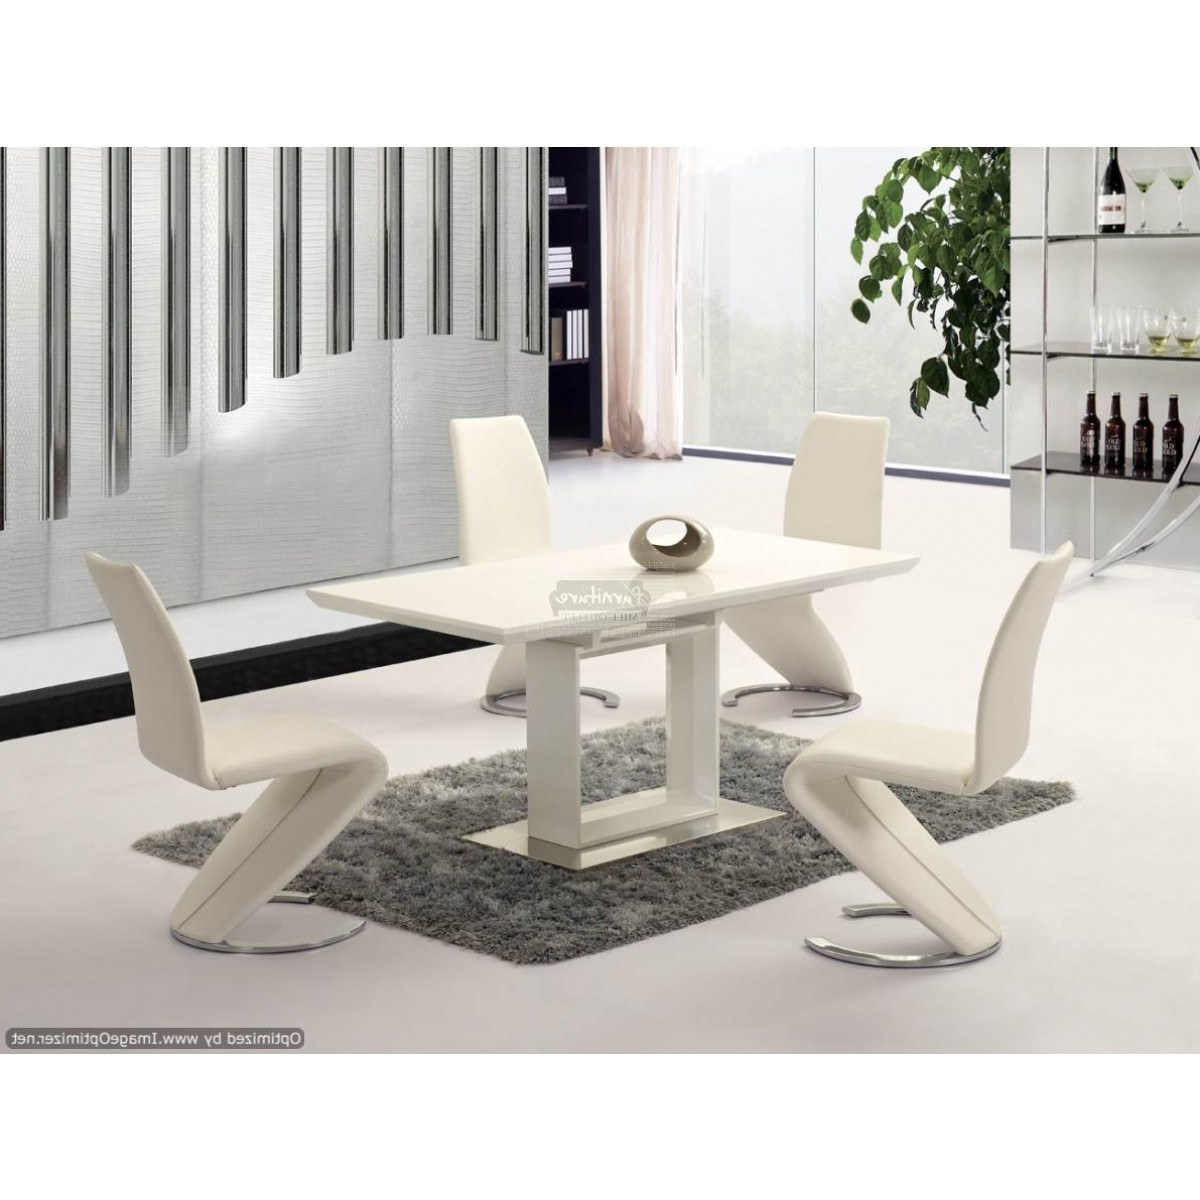 White Gloss Extendable Dining Tables Throughout Most Recent Space White High Gloss Extending Dining Table – 120Cm To 160Cm (View 5 of 25)